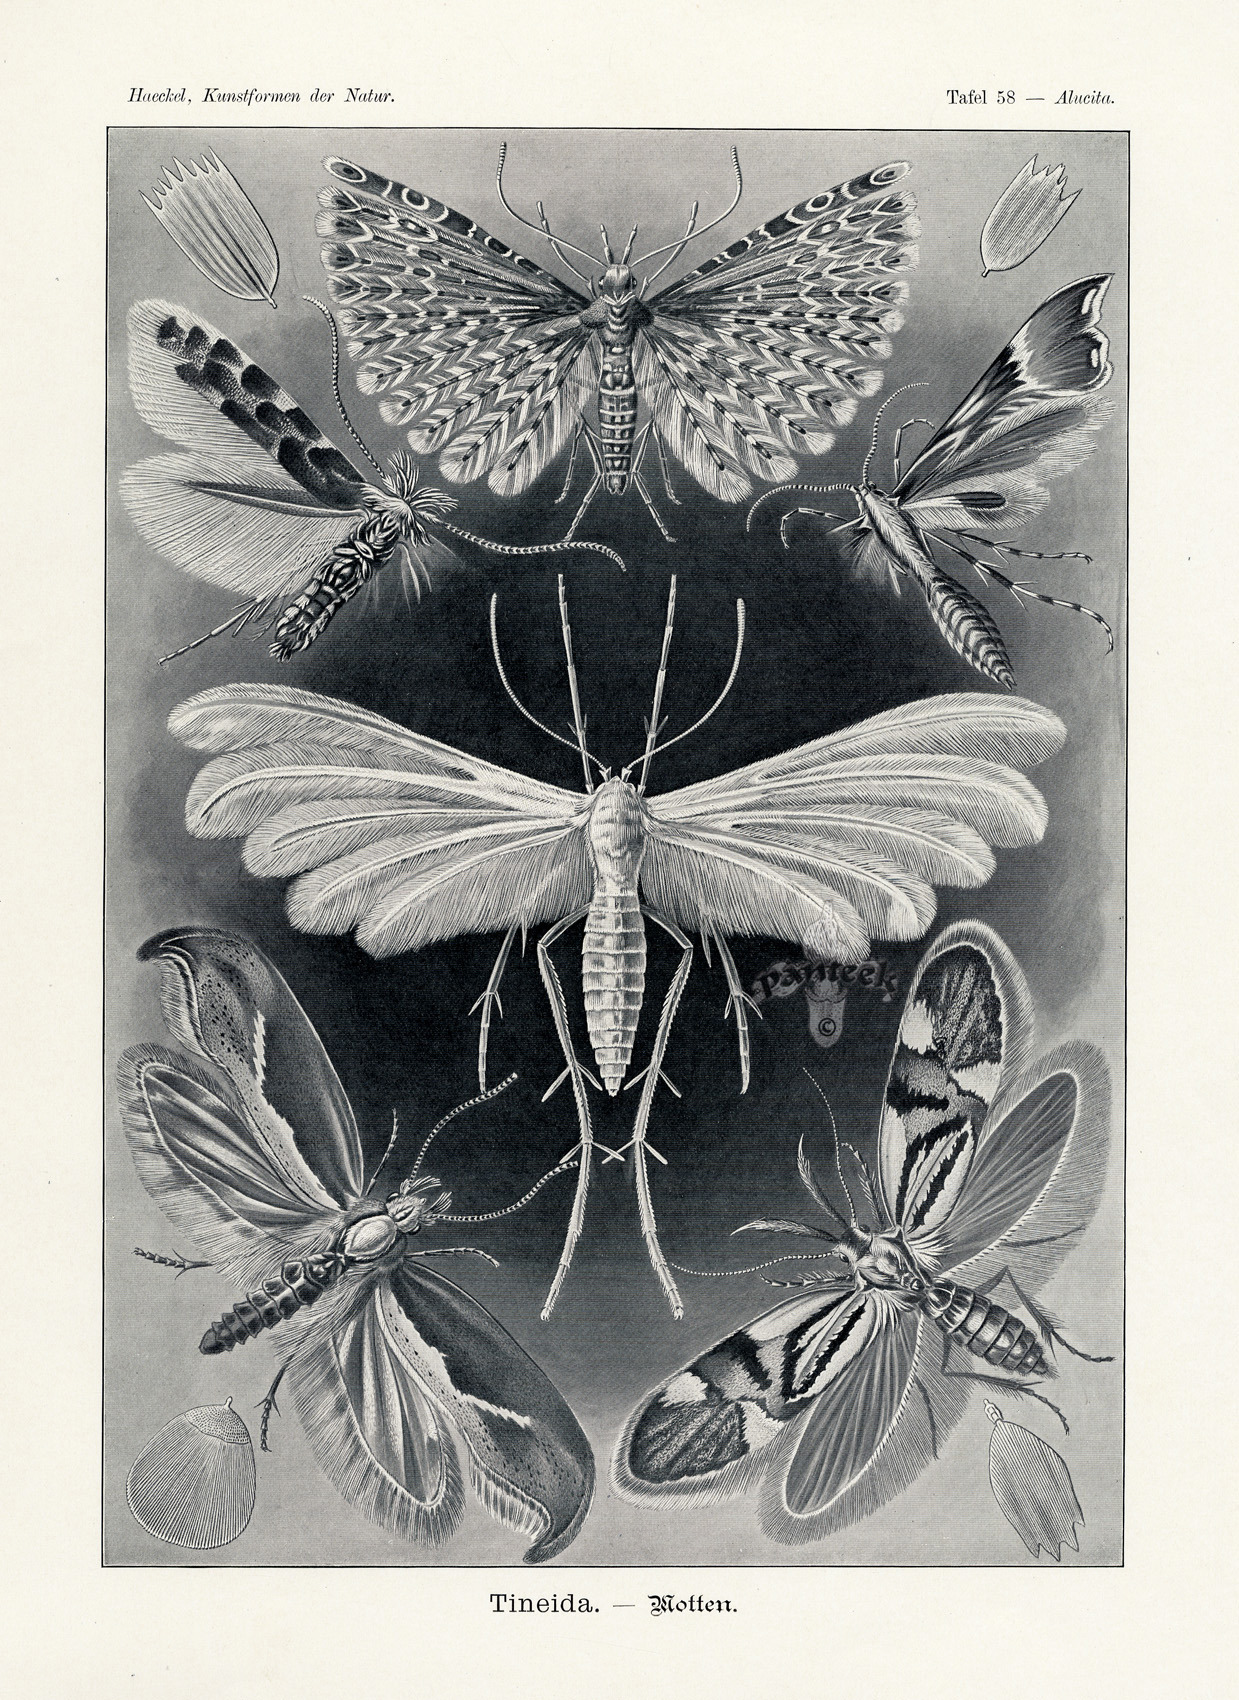 atelierentomologica:  Plate from Kunstformen der Natur, or Art Forms in Nature, by Ernst Heinrich Haeckel (1834-1919)